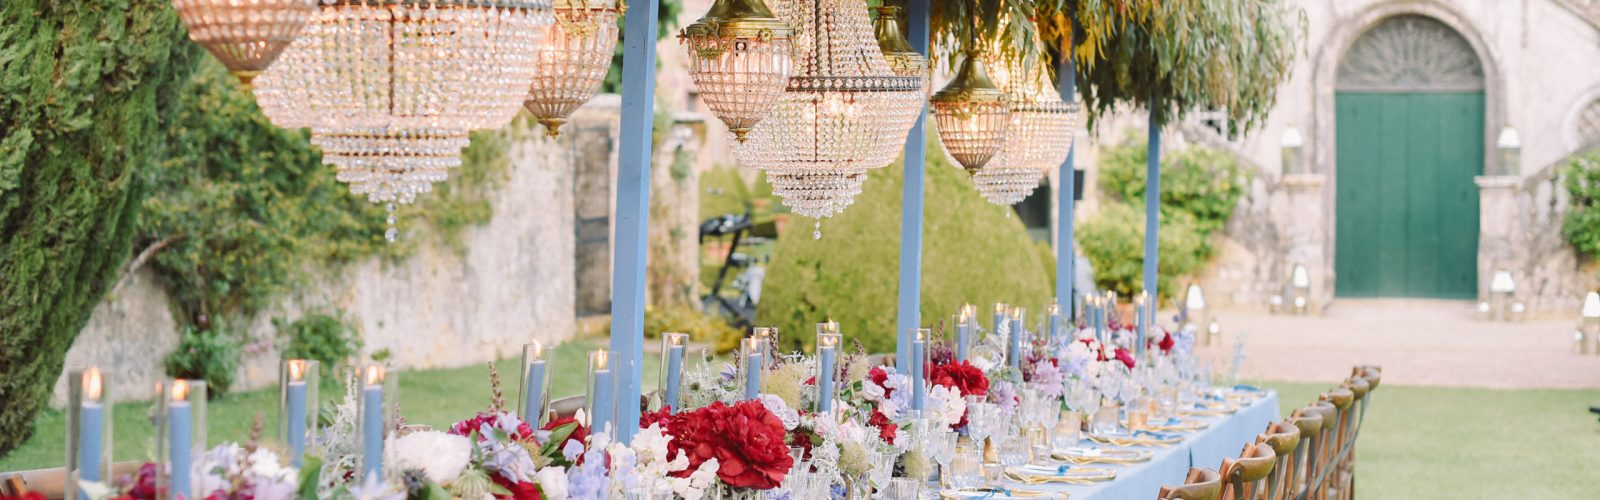 Wedding Reception Table Red Flowers and Green hanging Plants